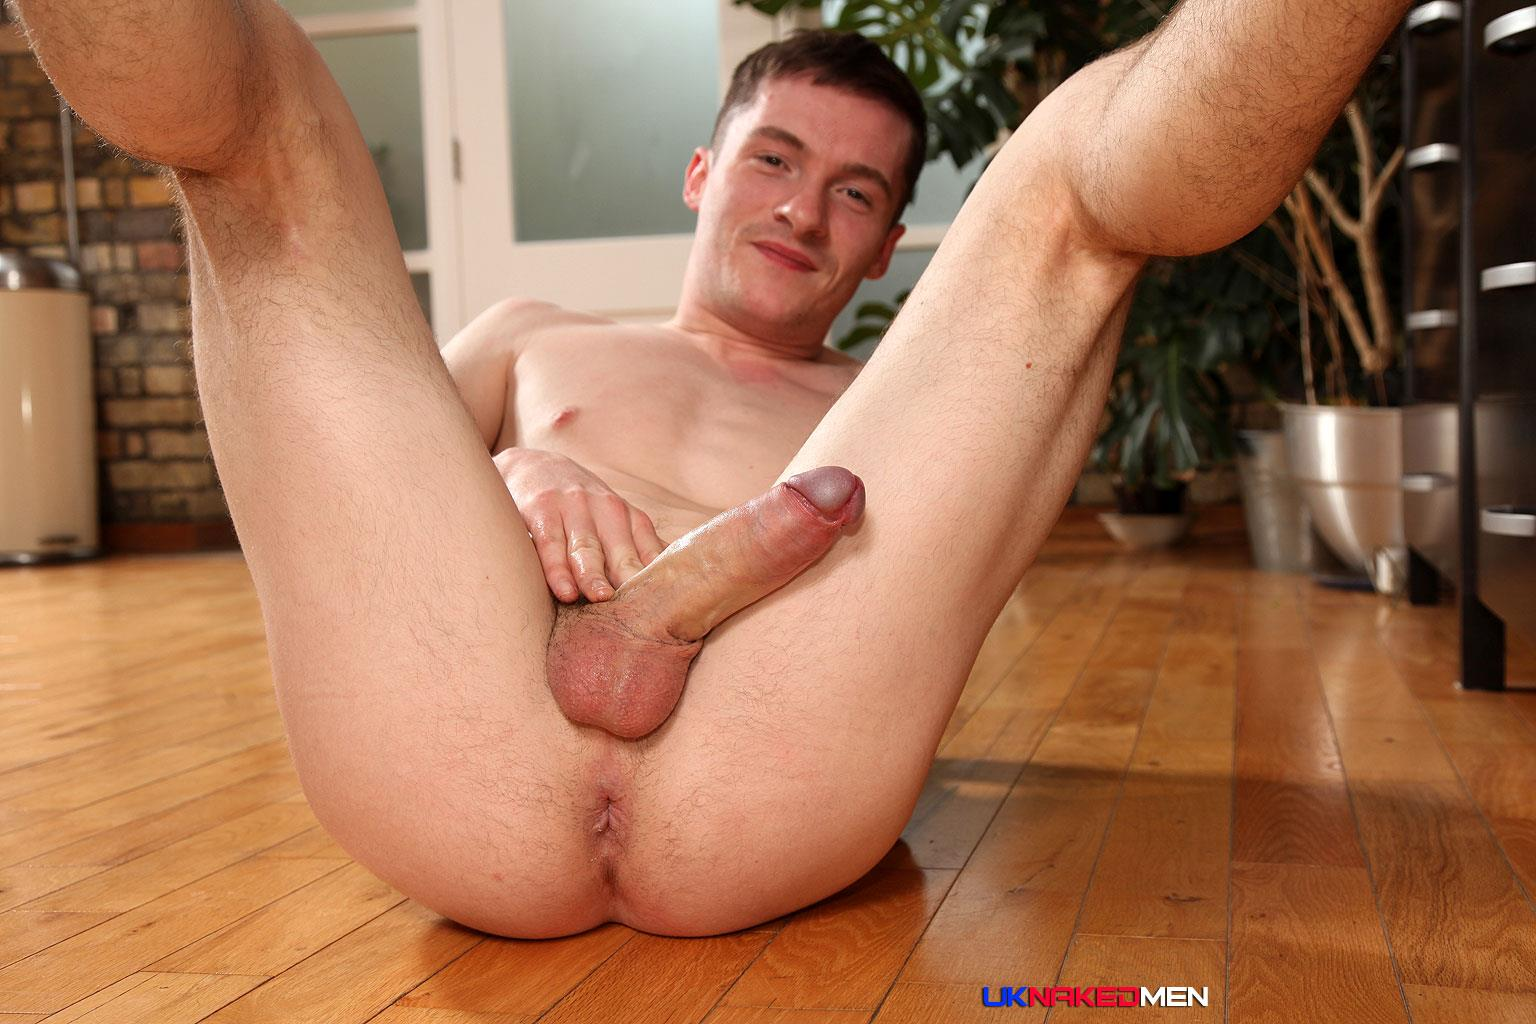 uk-naked-men-daniel-james-young-british-guy-jerking-his-big-uncut